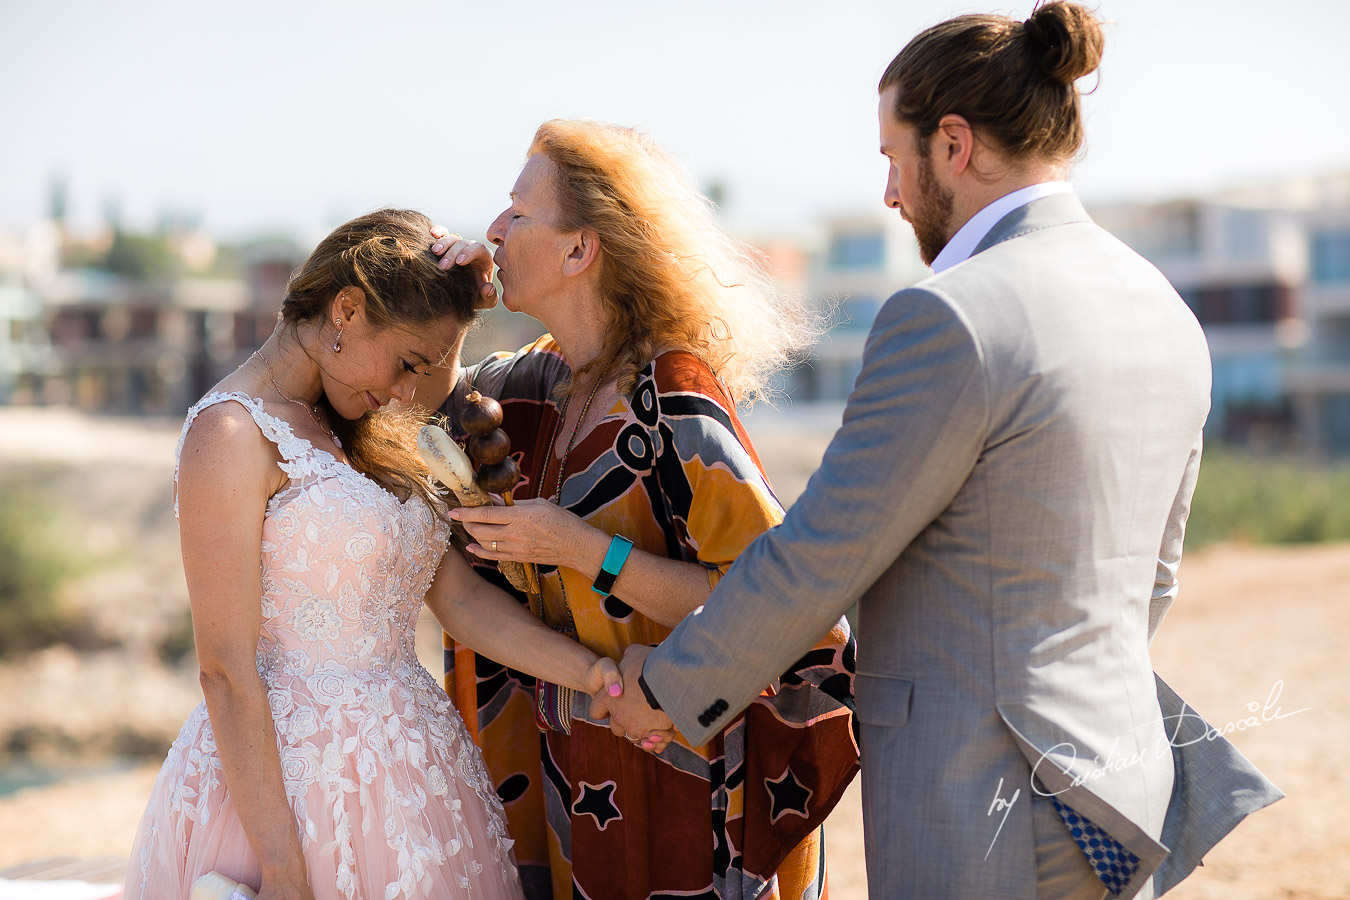 The shaman blessing the bride, moments captured at a Shamanic Wedding Ceremony by Cyprus Wedding Photographer Cristian Dascalu.